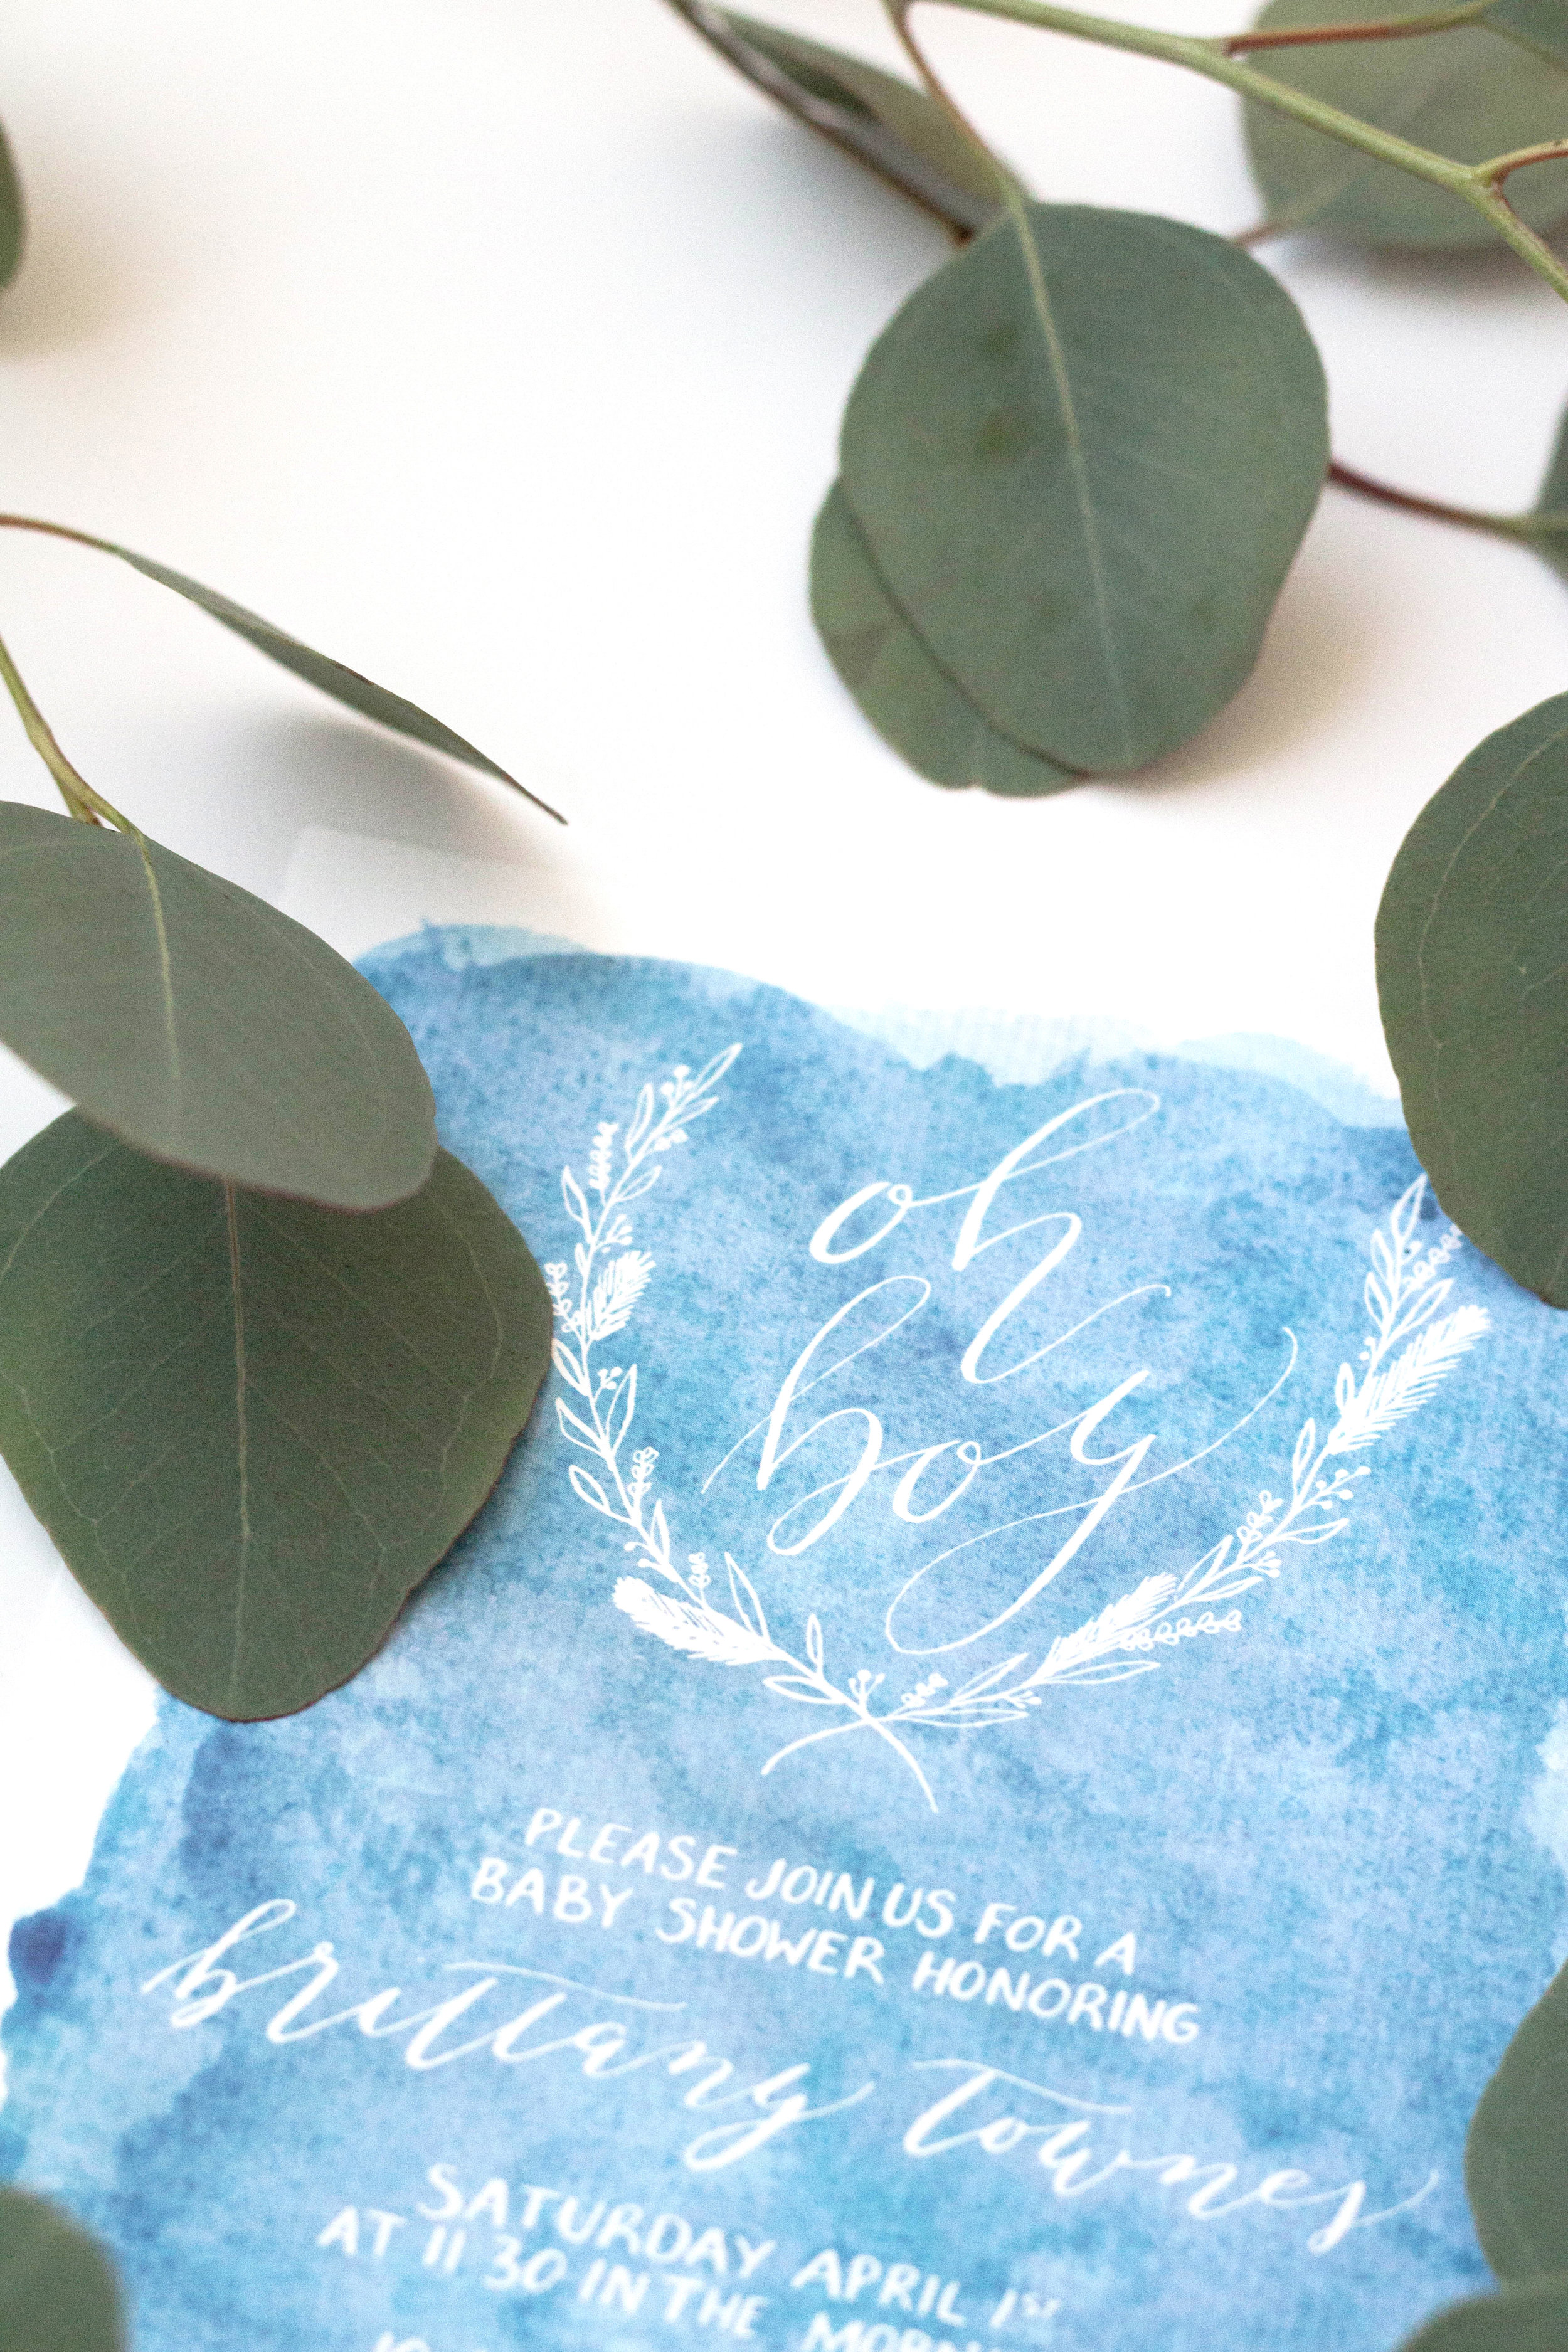 Baby Shower Invitation featuring Organic Modern Calligraphy     True North Paper Co.